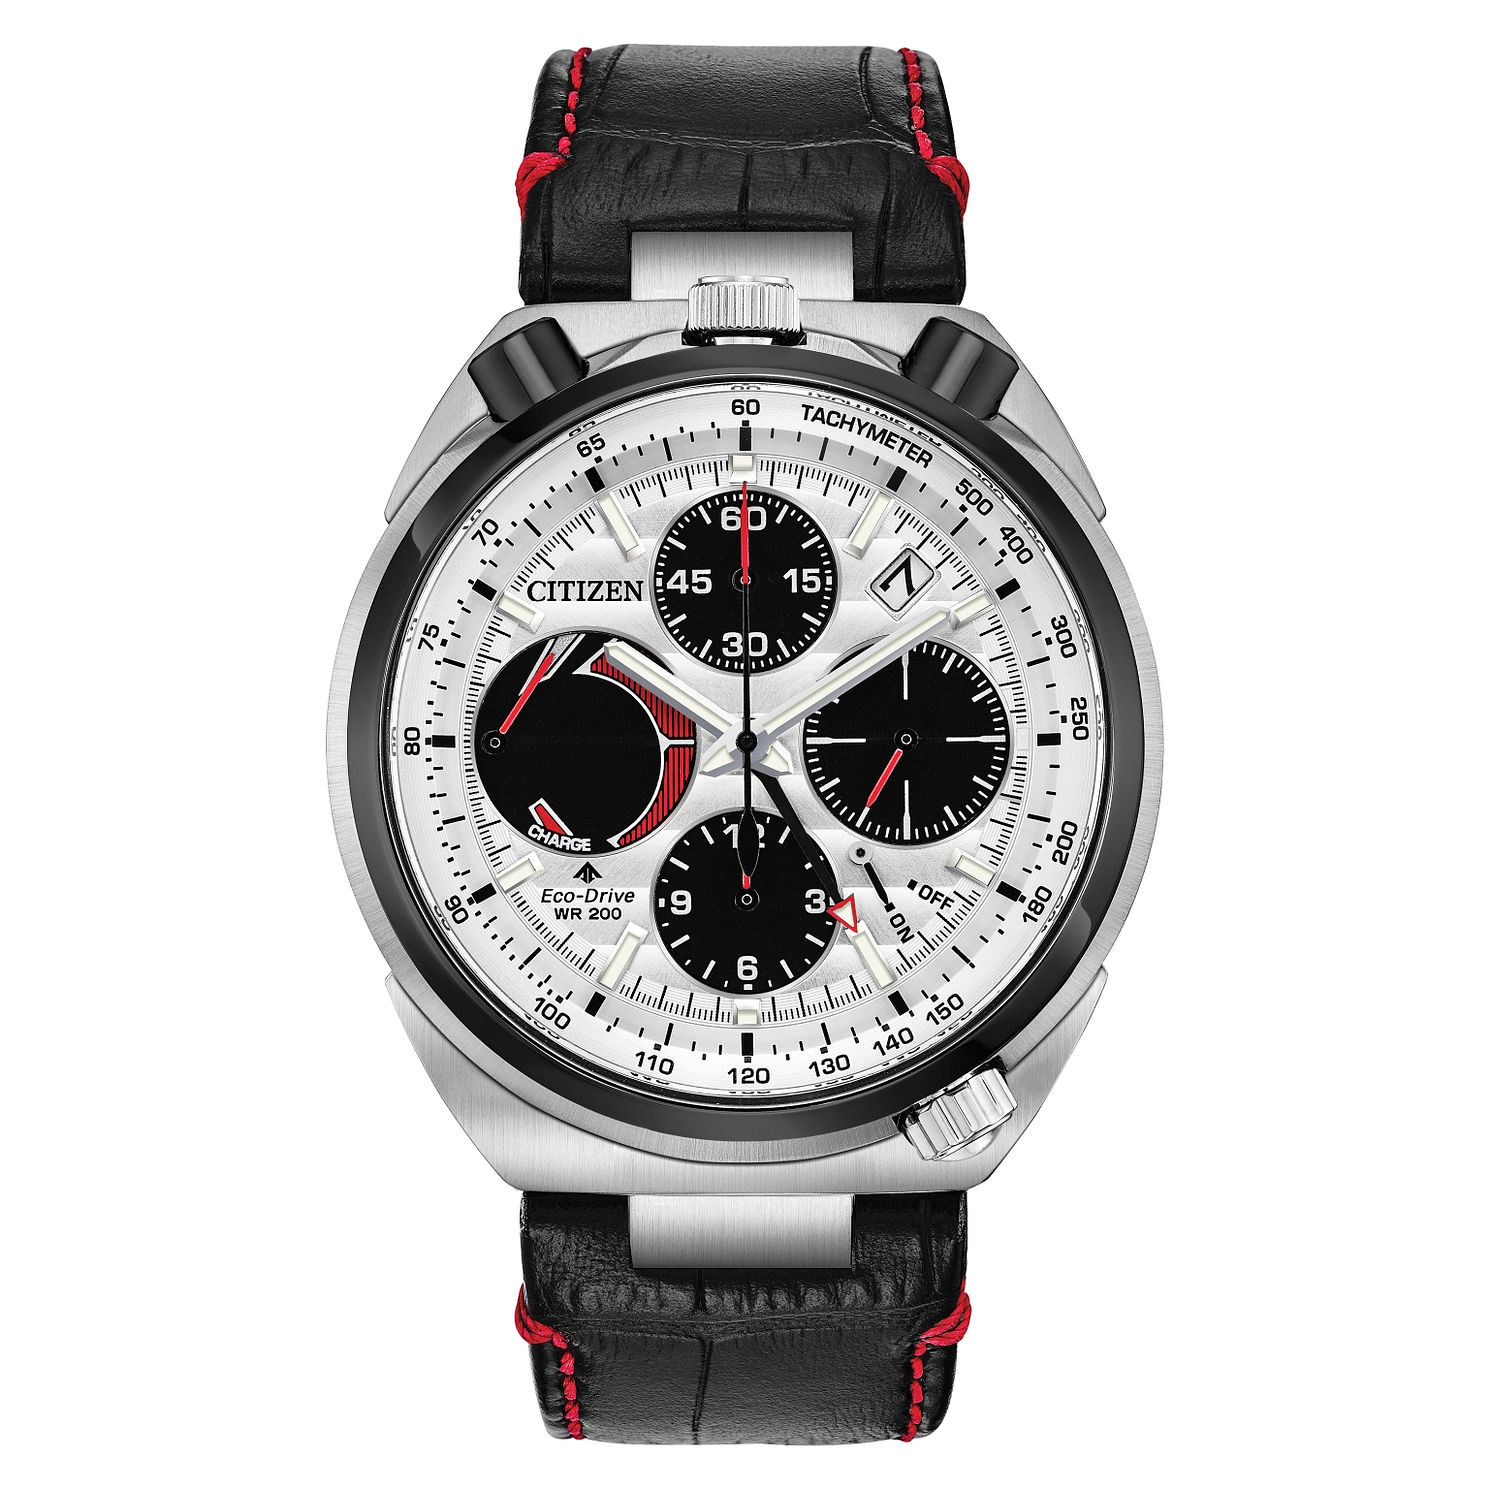 Citizen Men's Eco-Drive Tsuno Chronograph Black Strap Watch - Product number 1098543